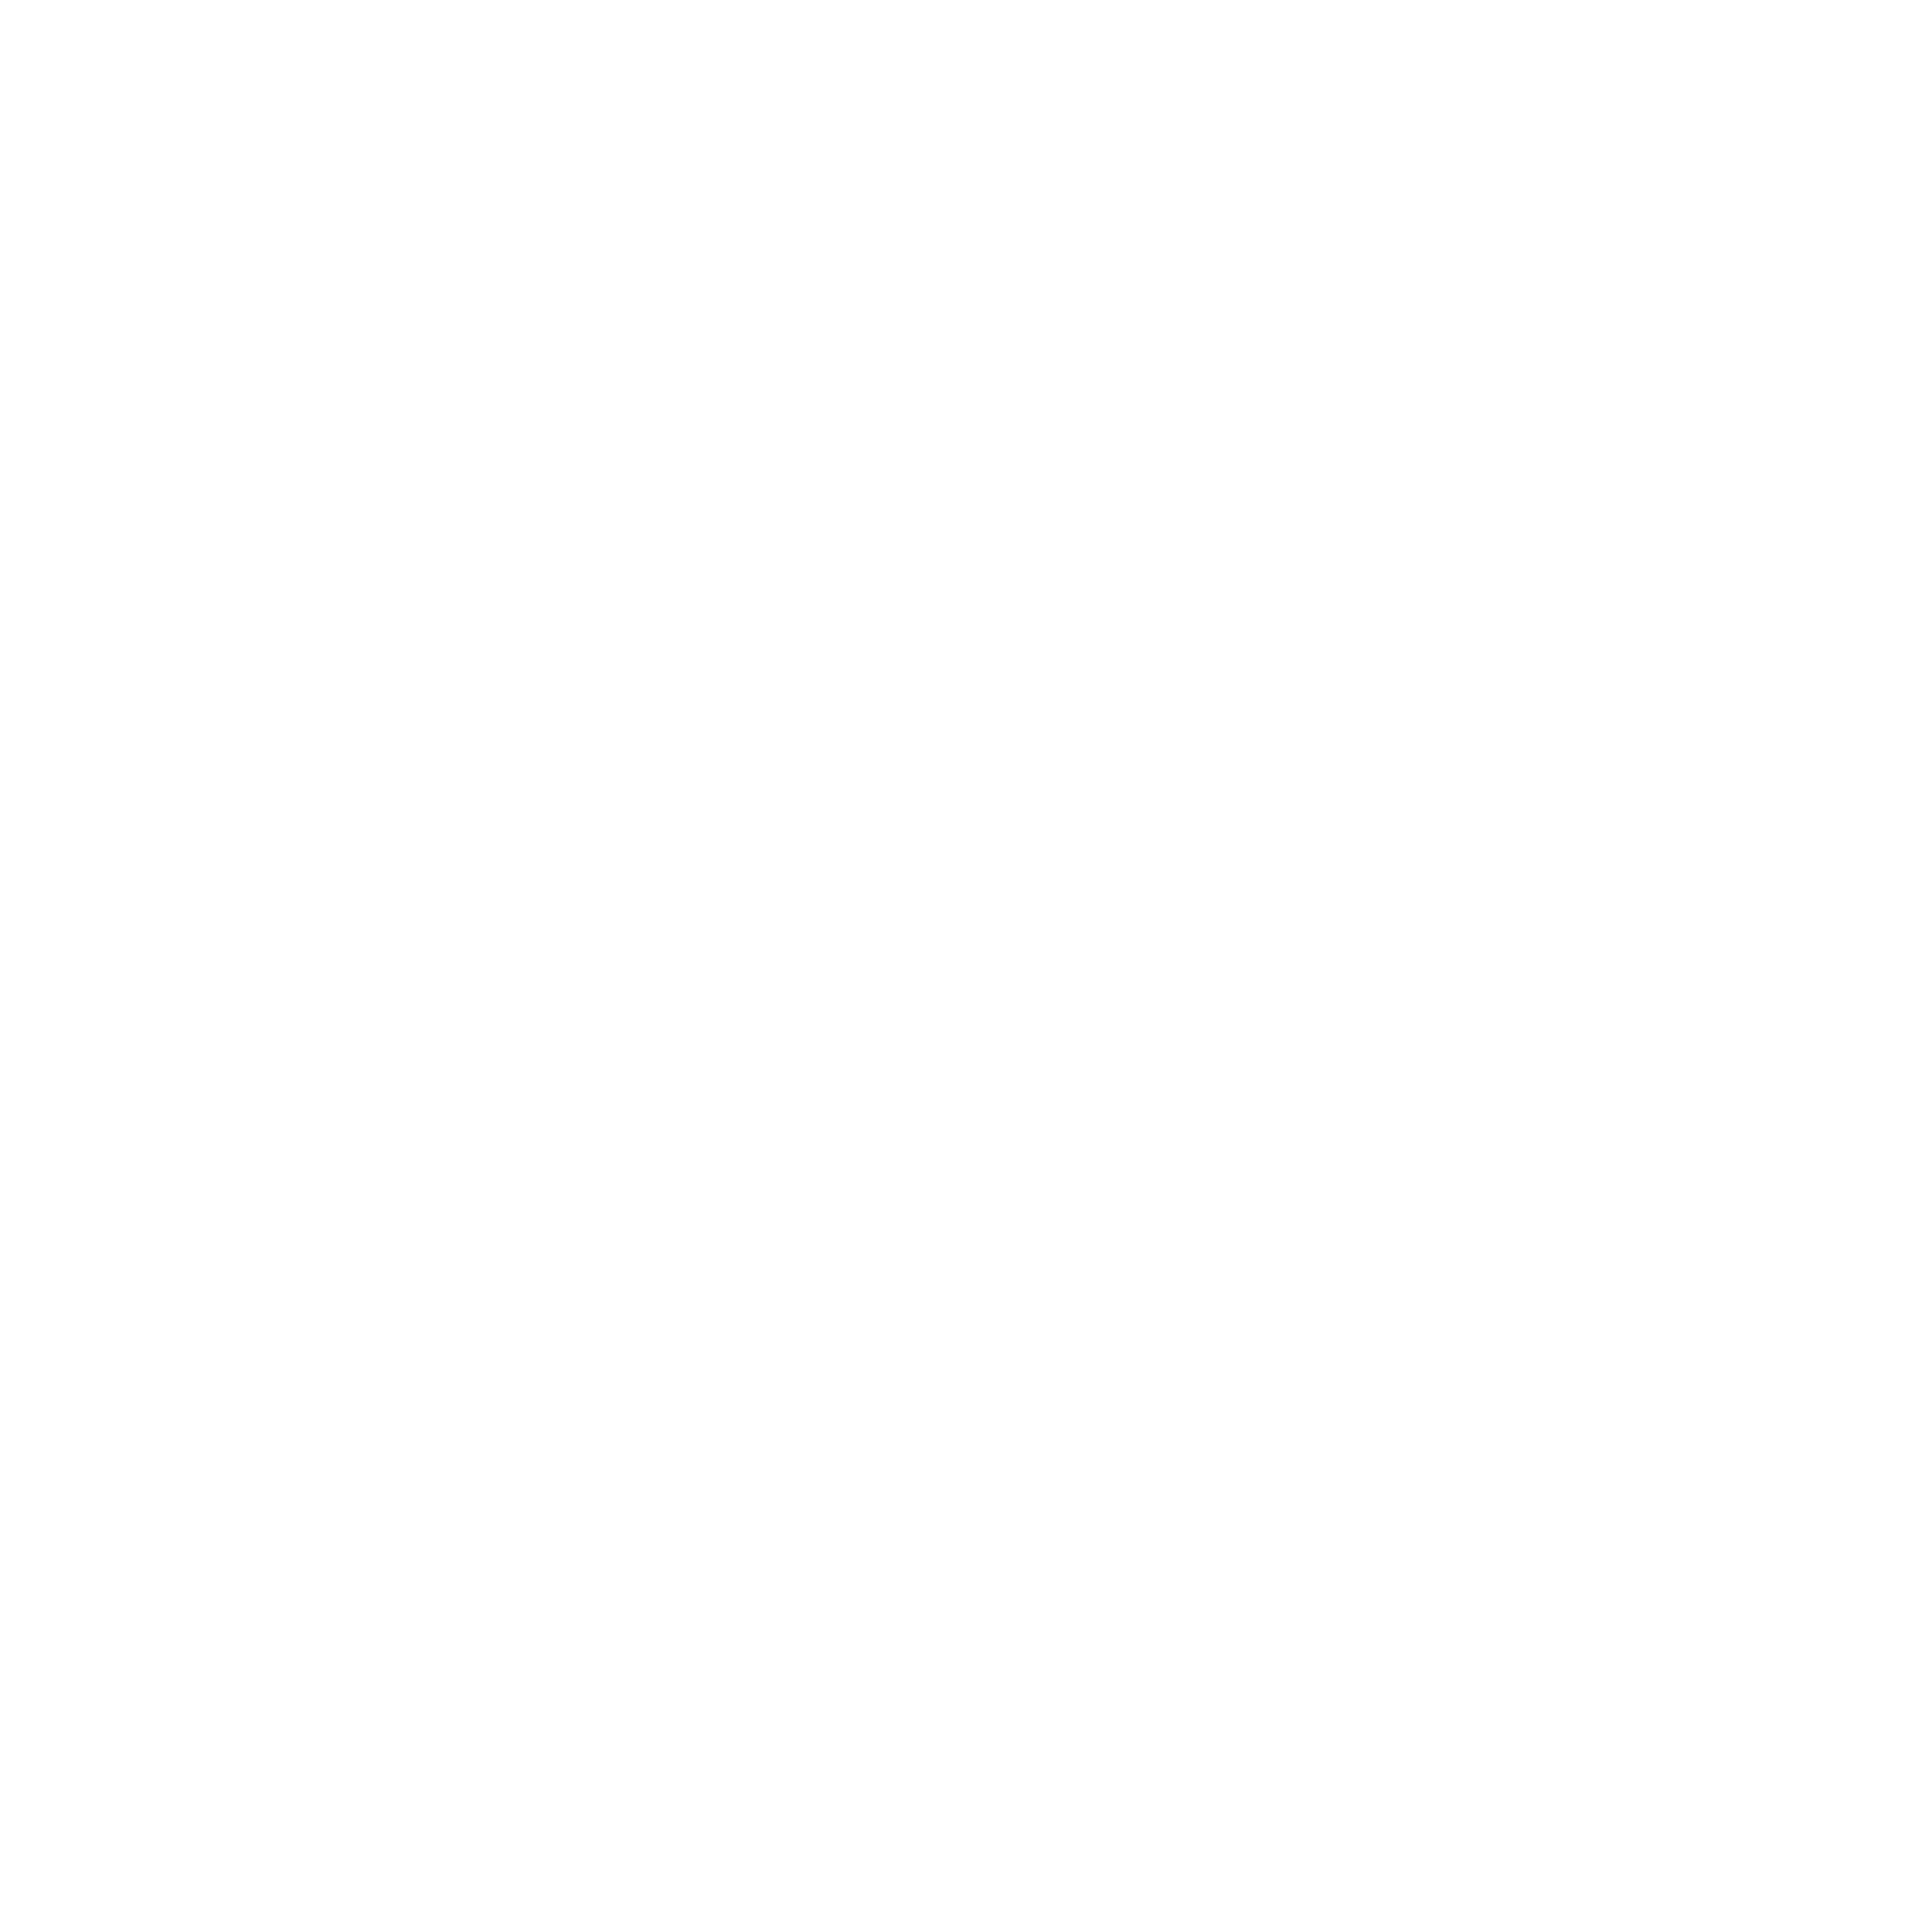 Eddie Bauer Logo PNG Transparent & SVG Vector.